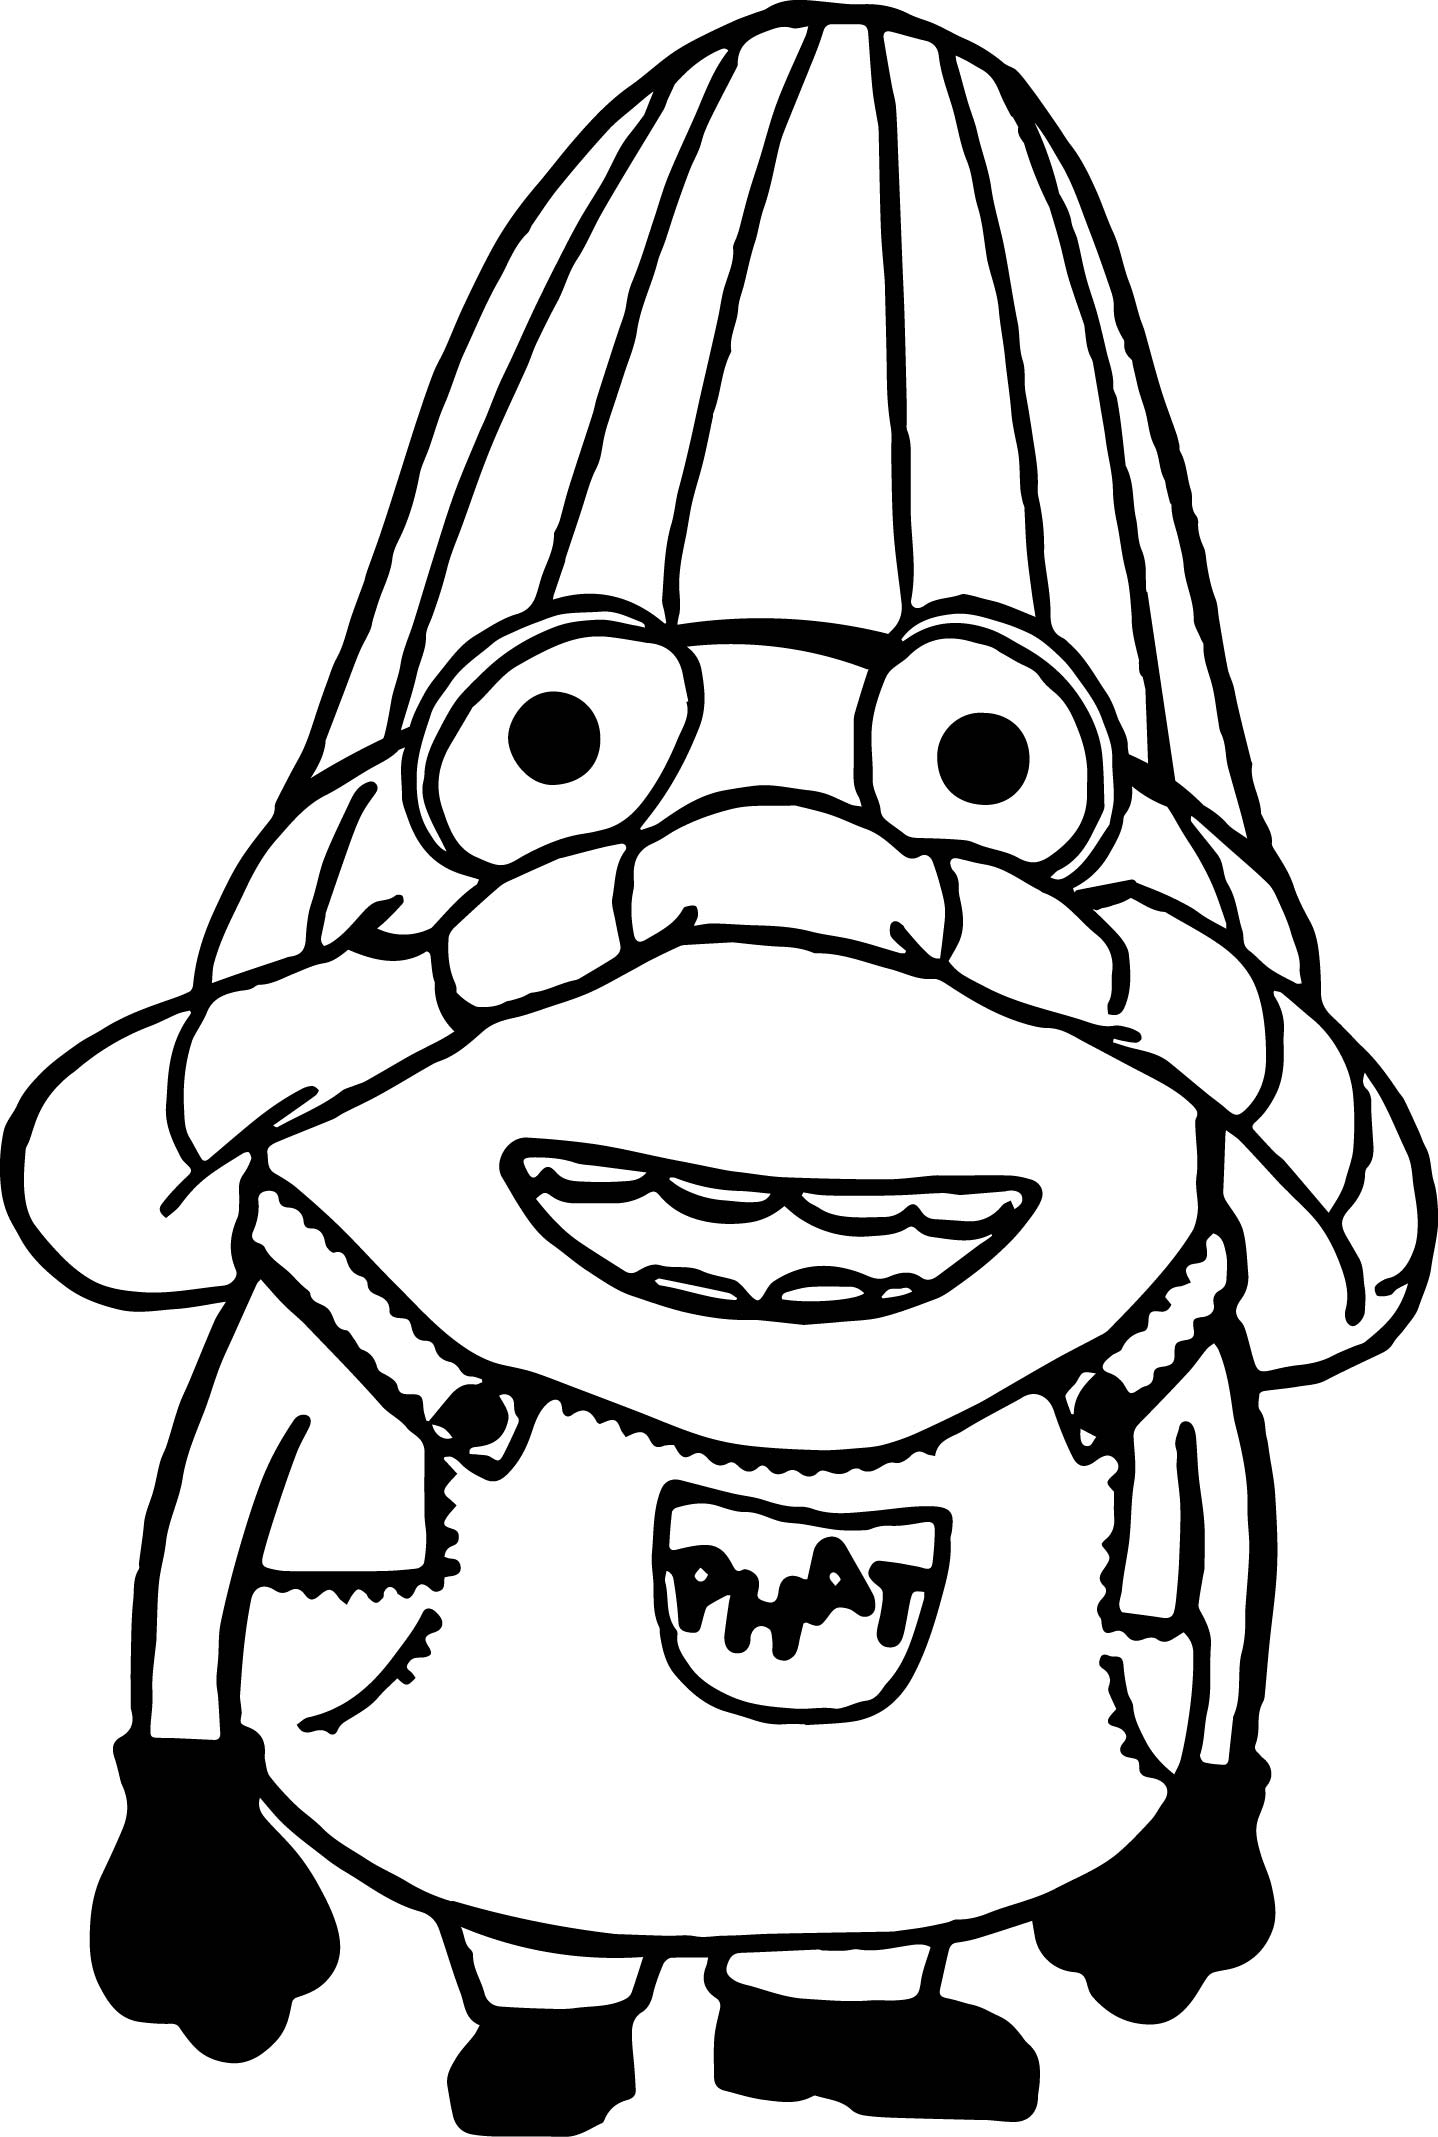 Coloring book bag - Minions Head Bag Coloring Page